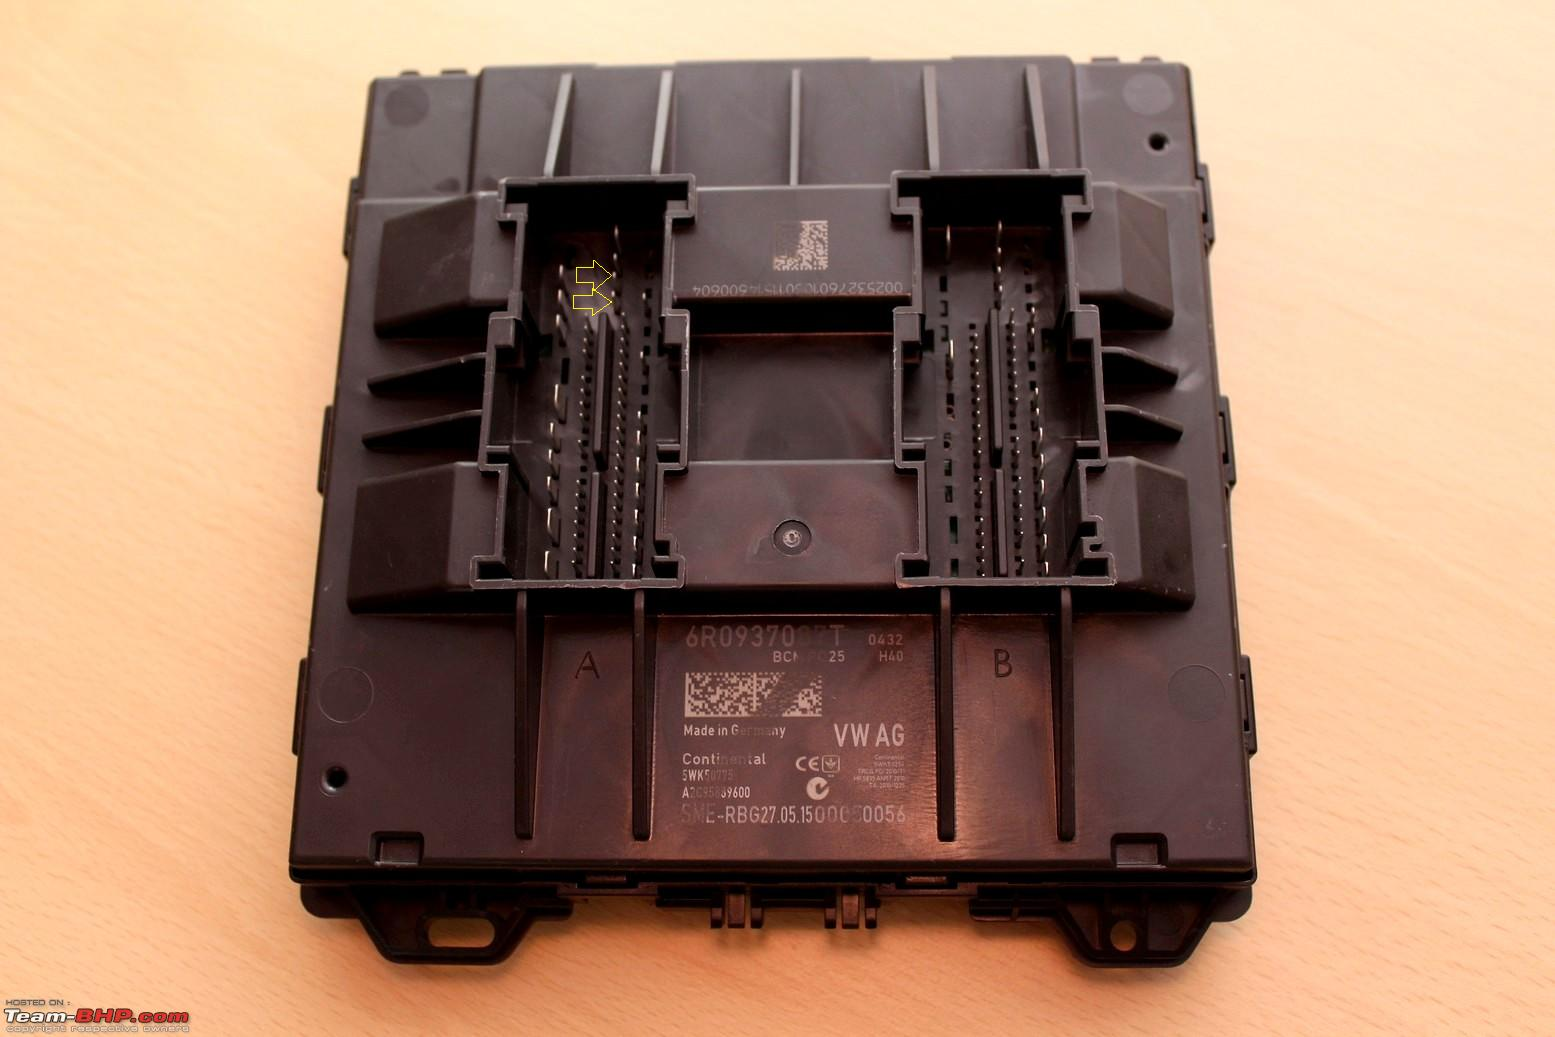 hight resolution of vw polo diy upgrading the bcm body control module img 1215p png